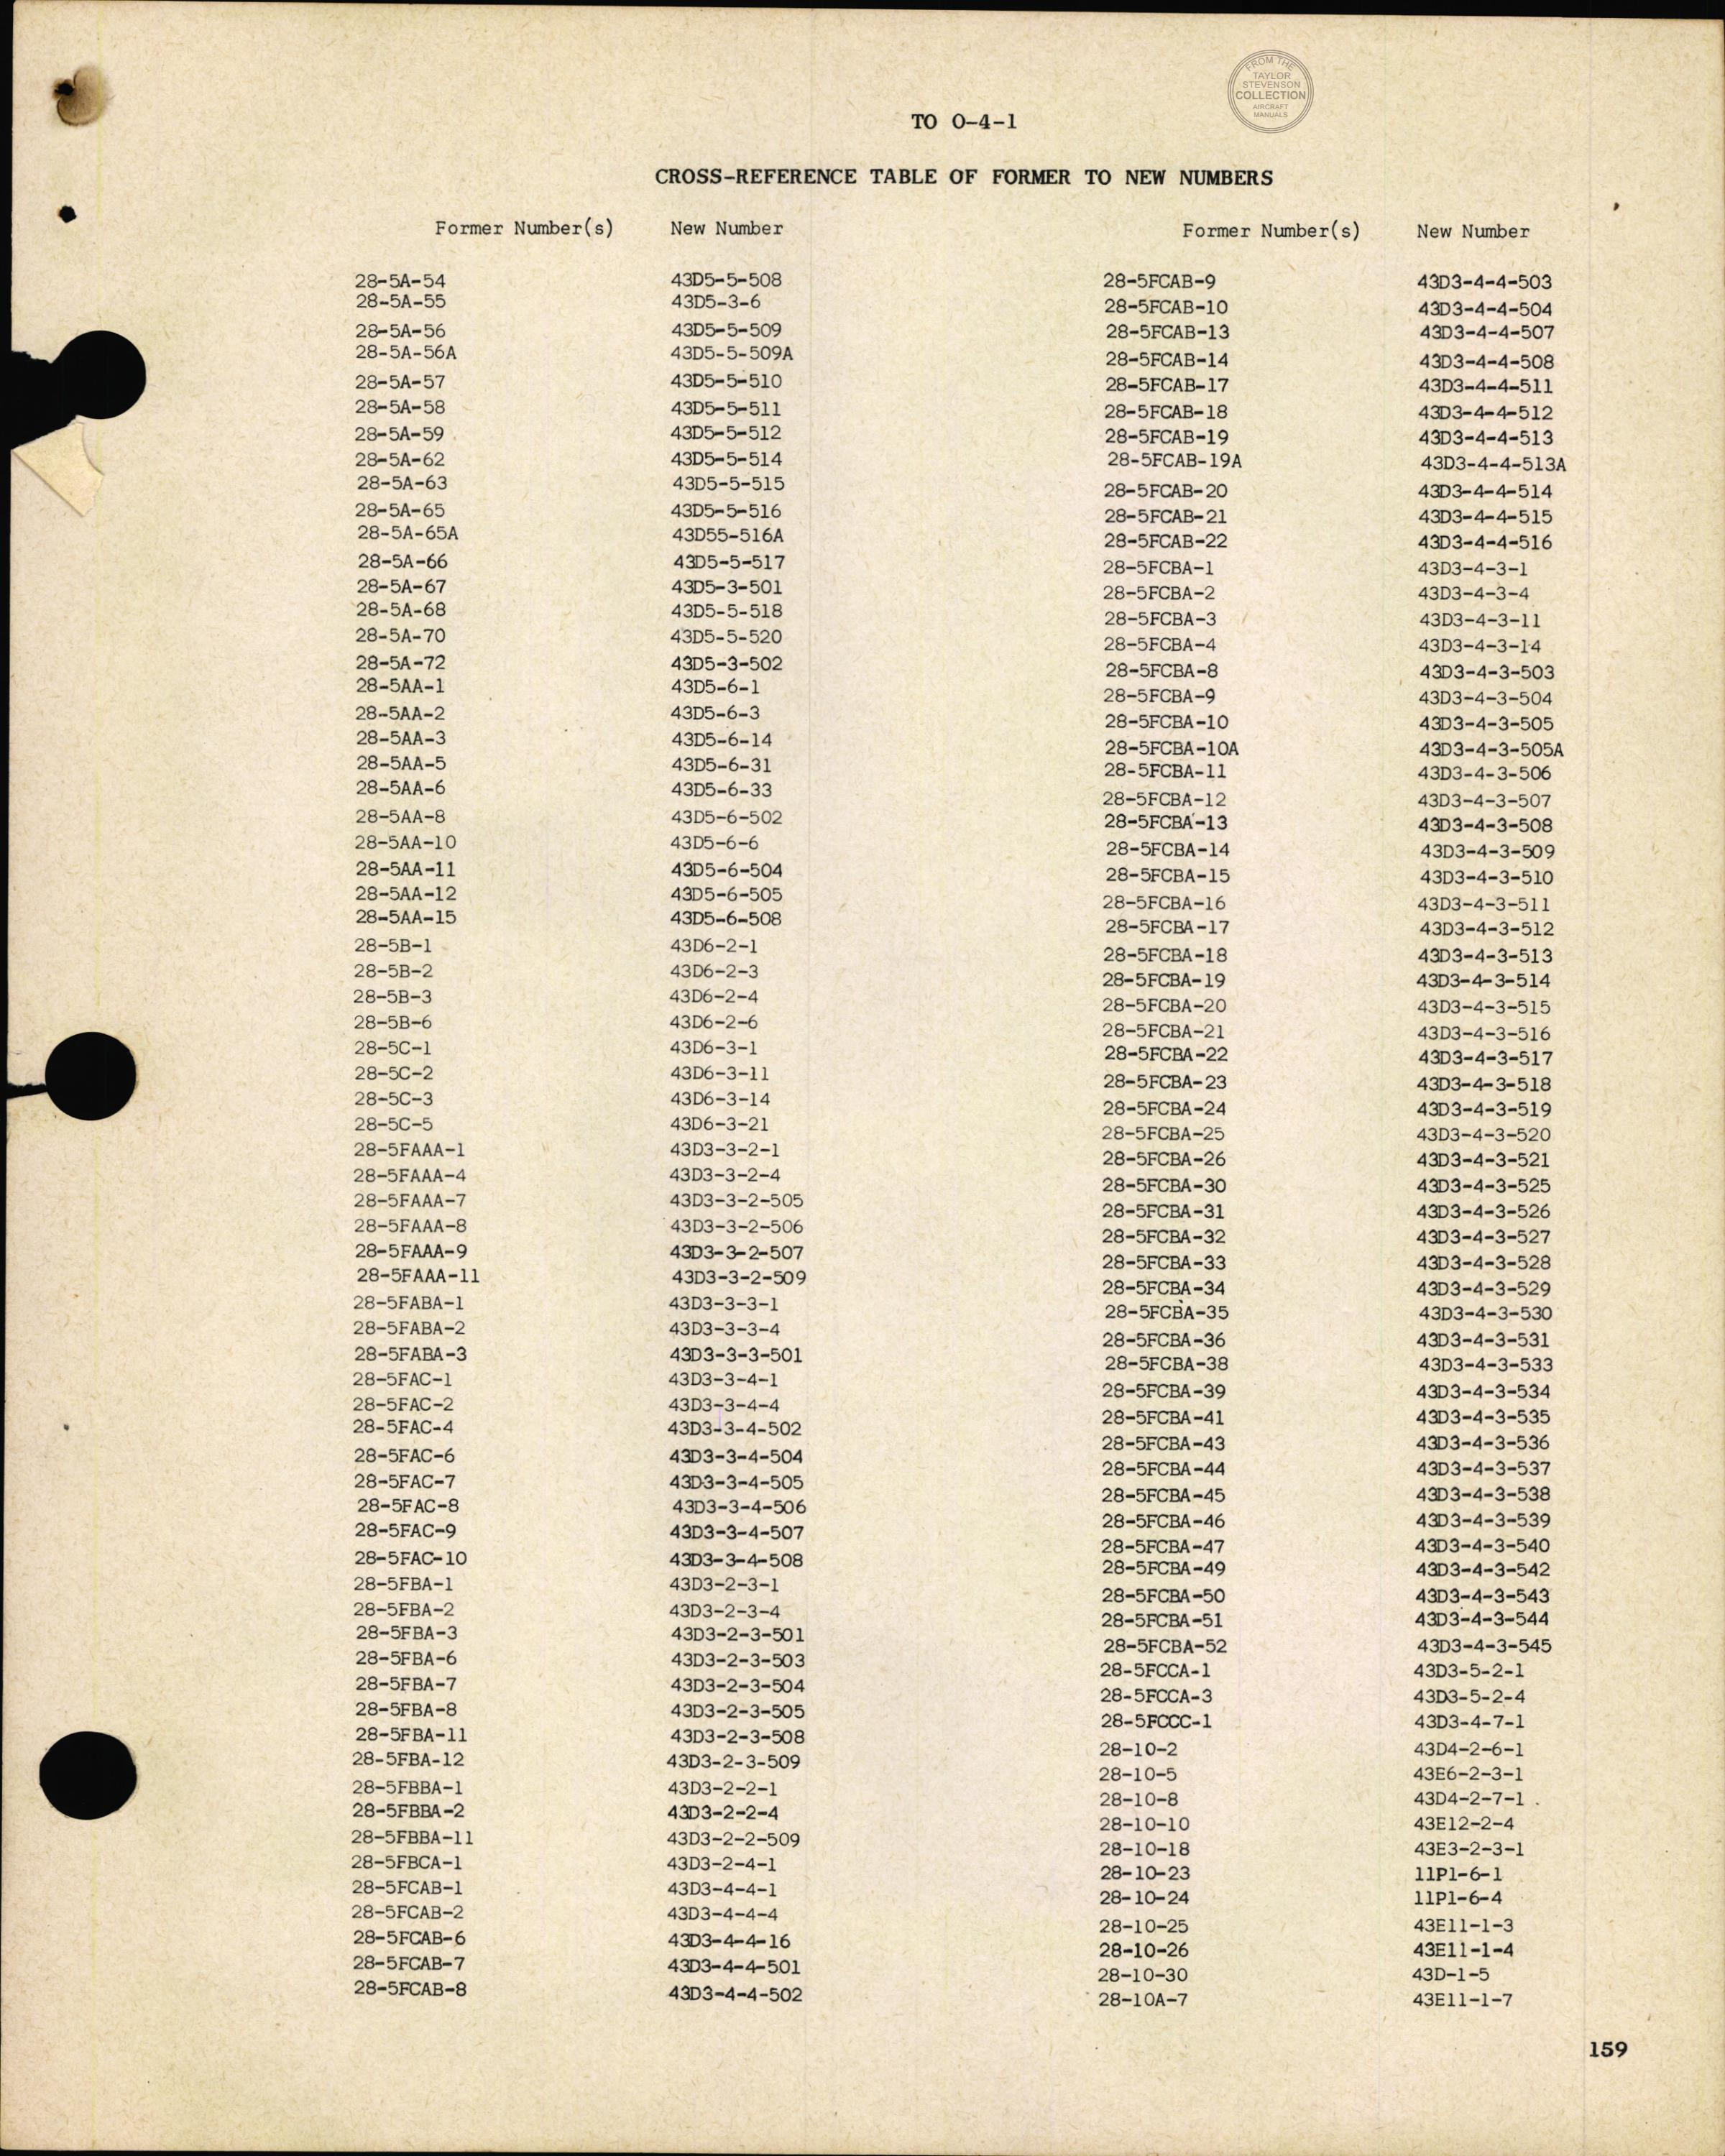 Sample page 161 from AirCorps Library document: Cross Reference Table of Former to New Numbers